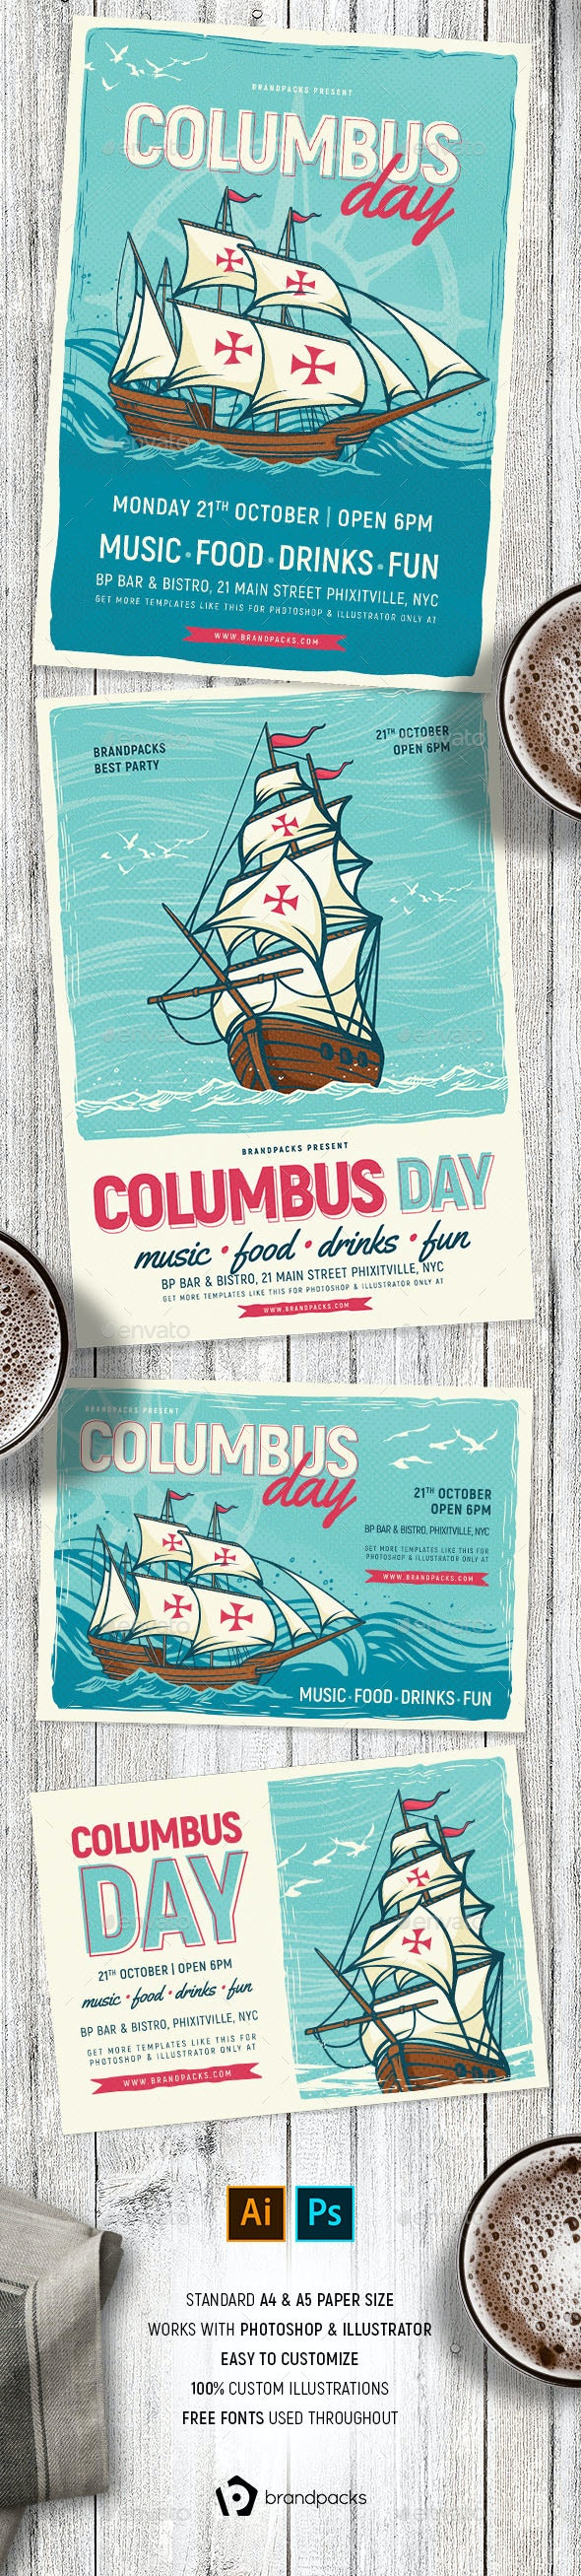 Columbus Day Flyer / Poster Template - Holidays Events